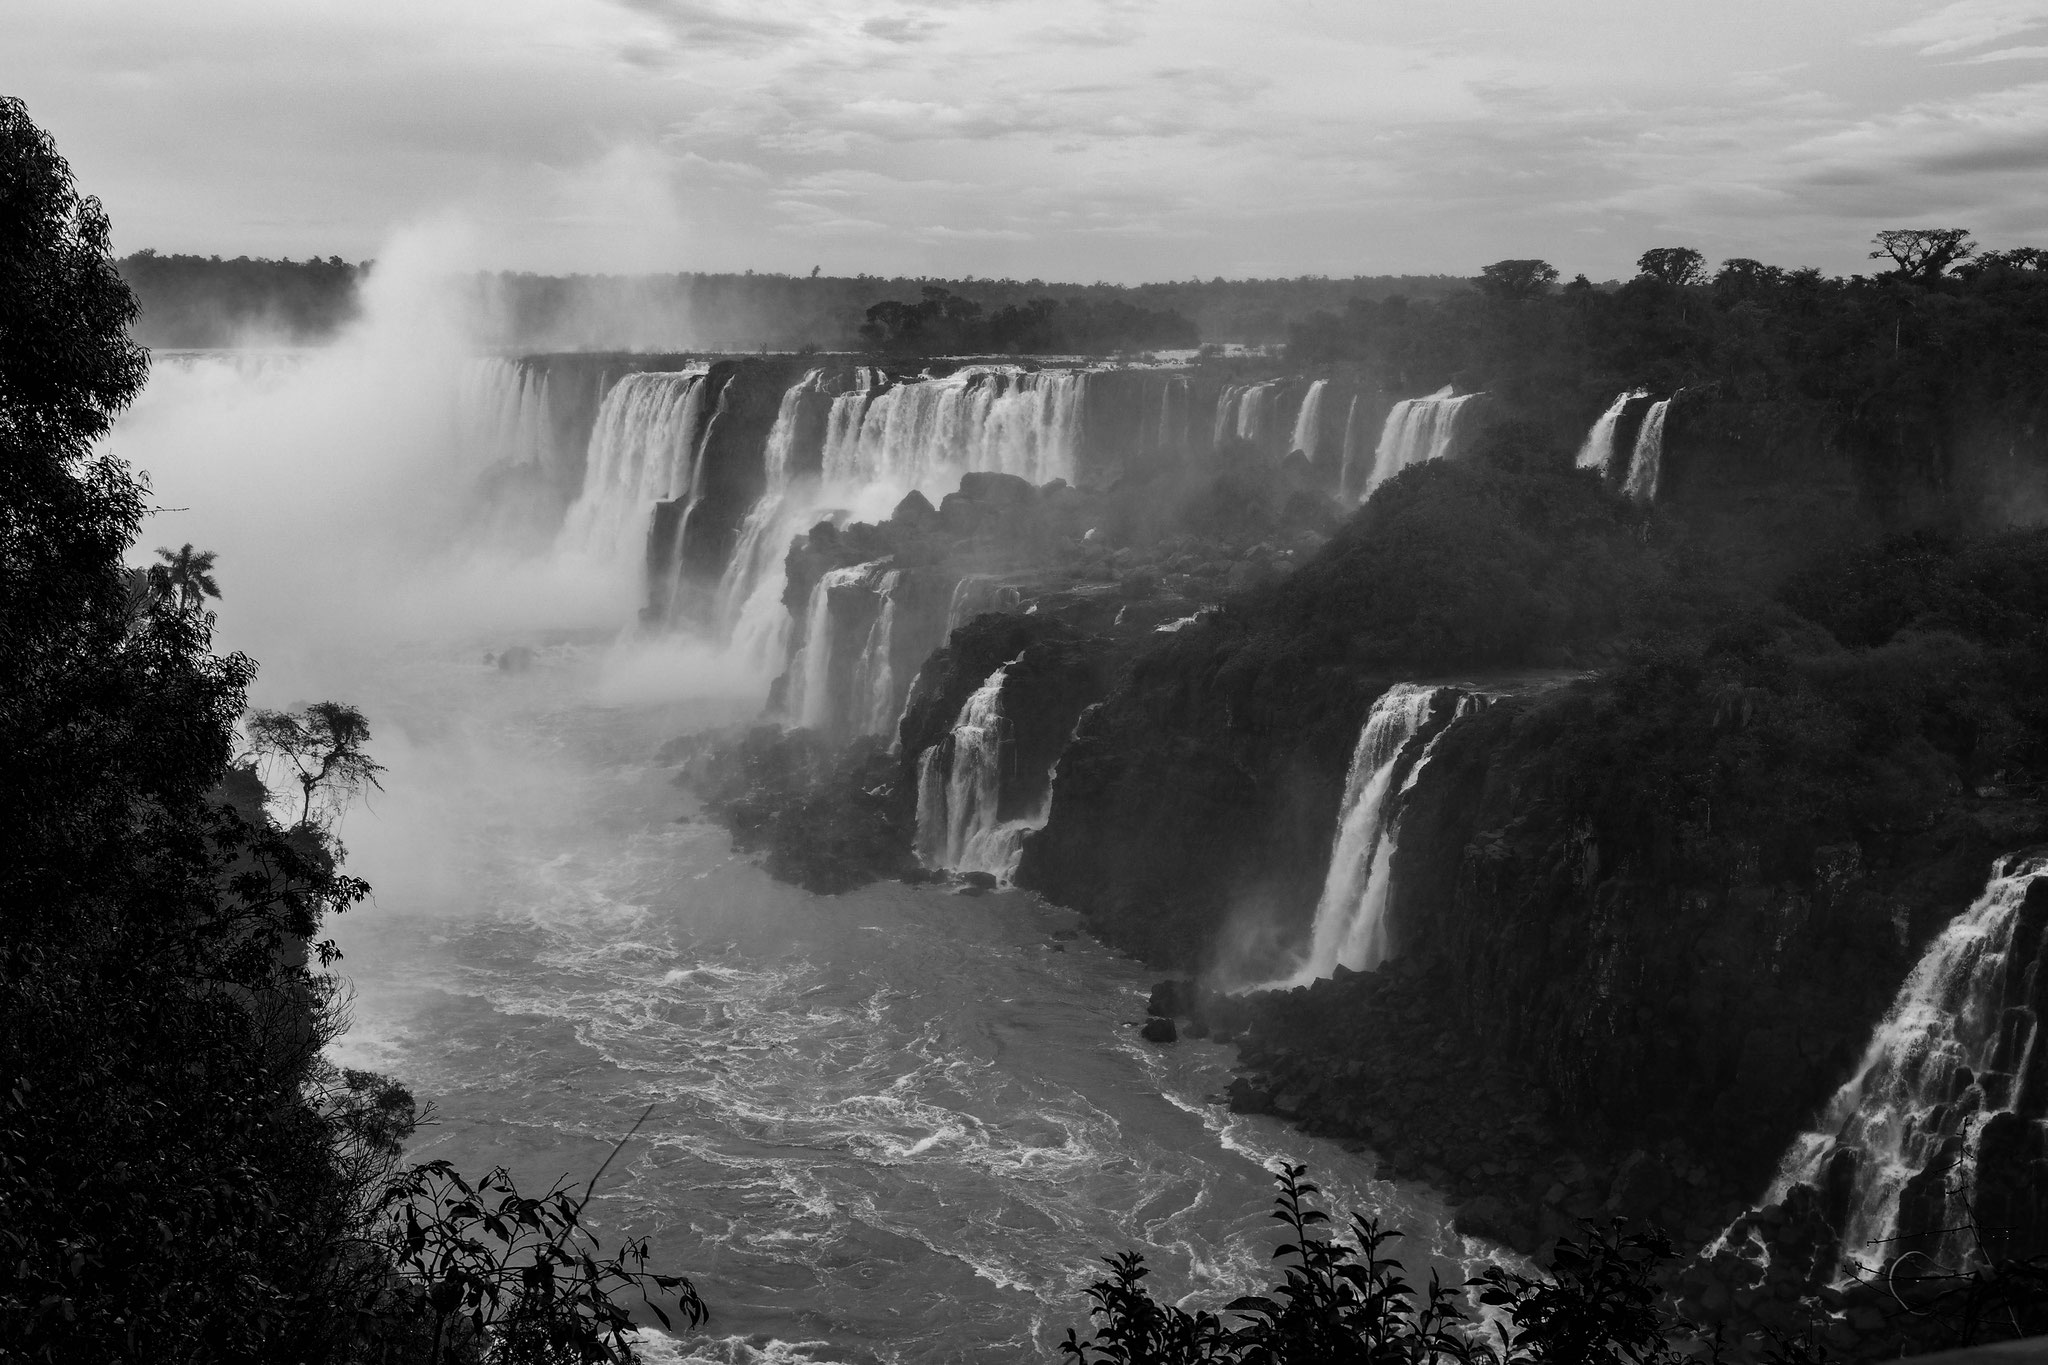 The waterfalls become smaller as we leave Iguazú.